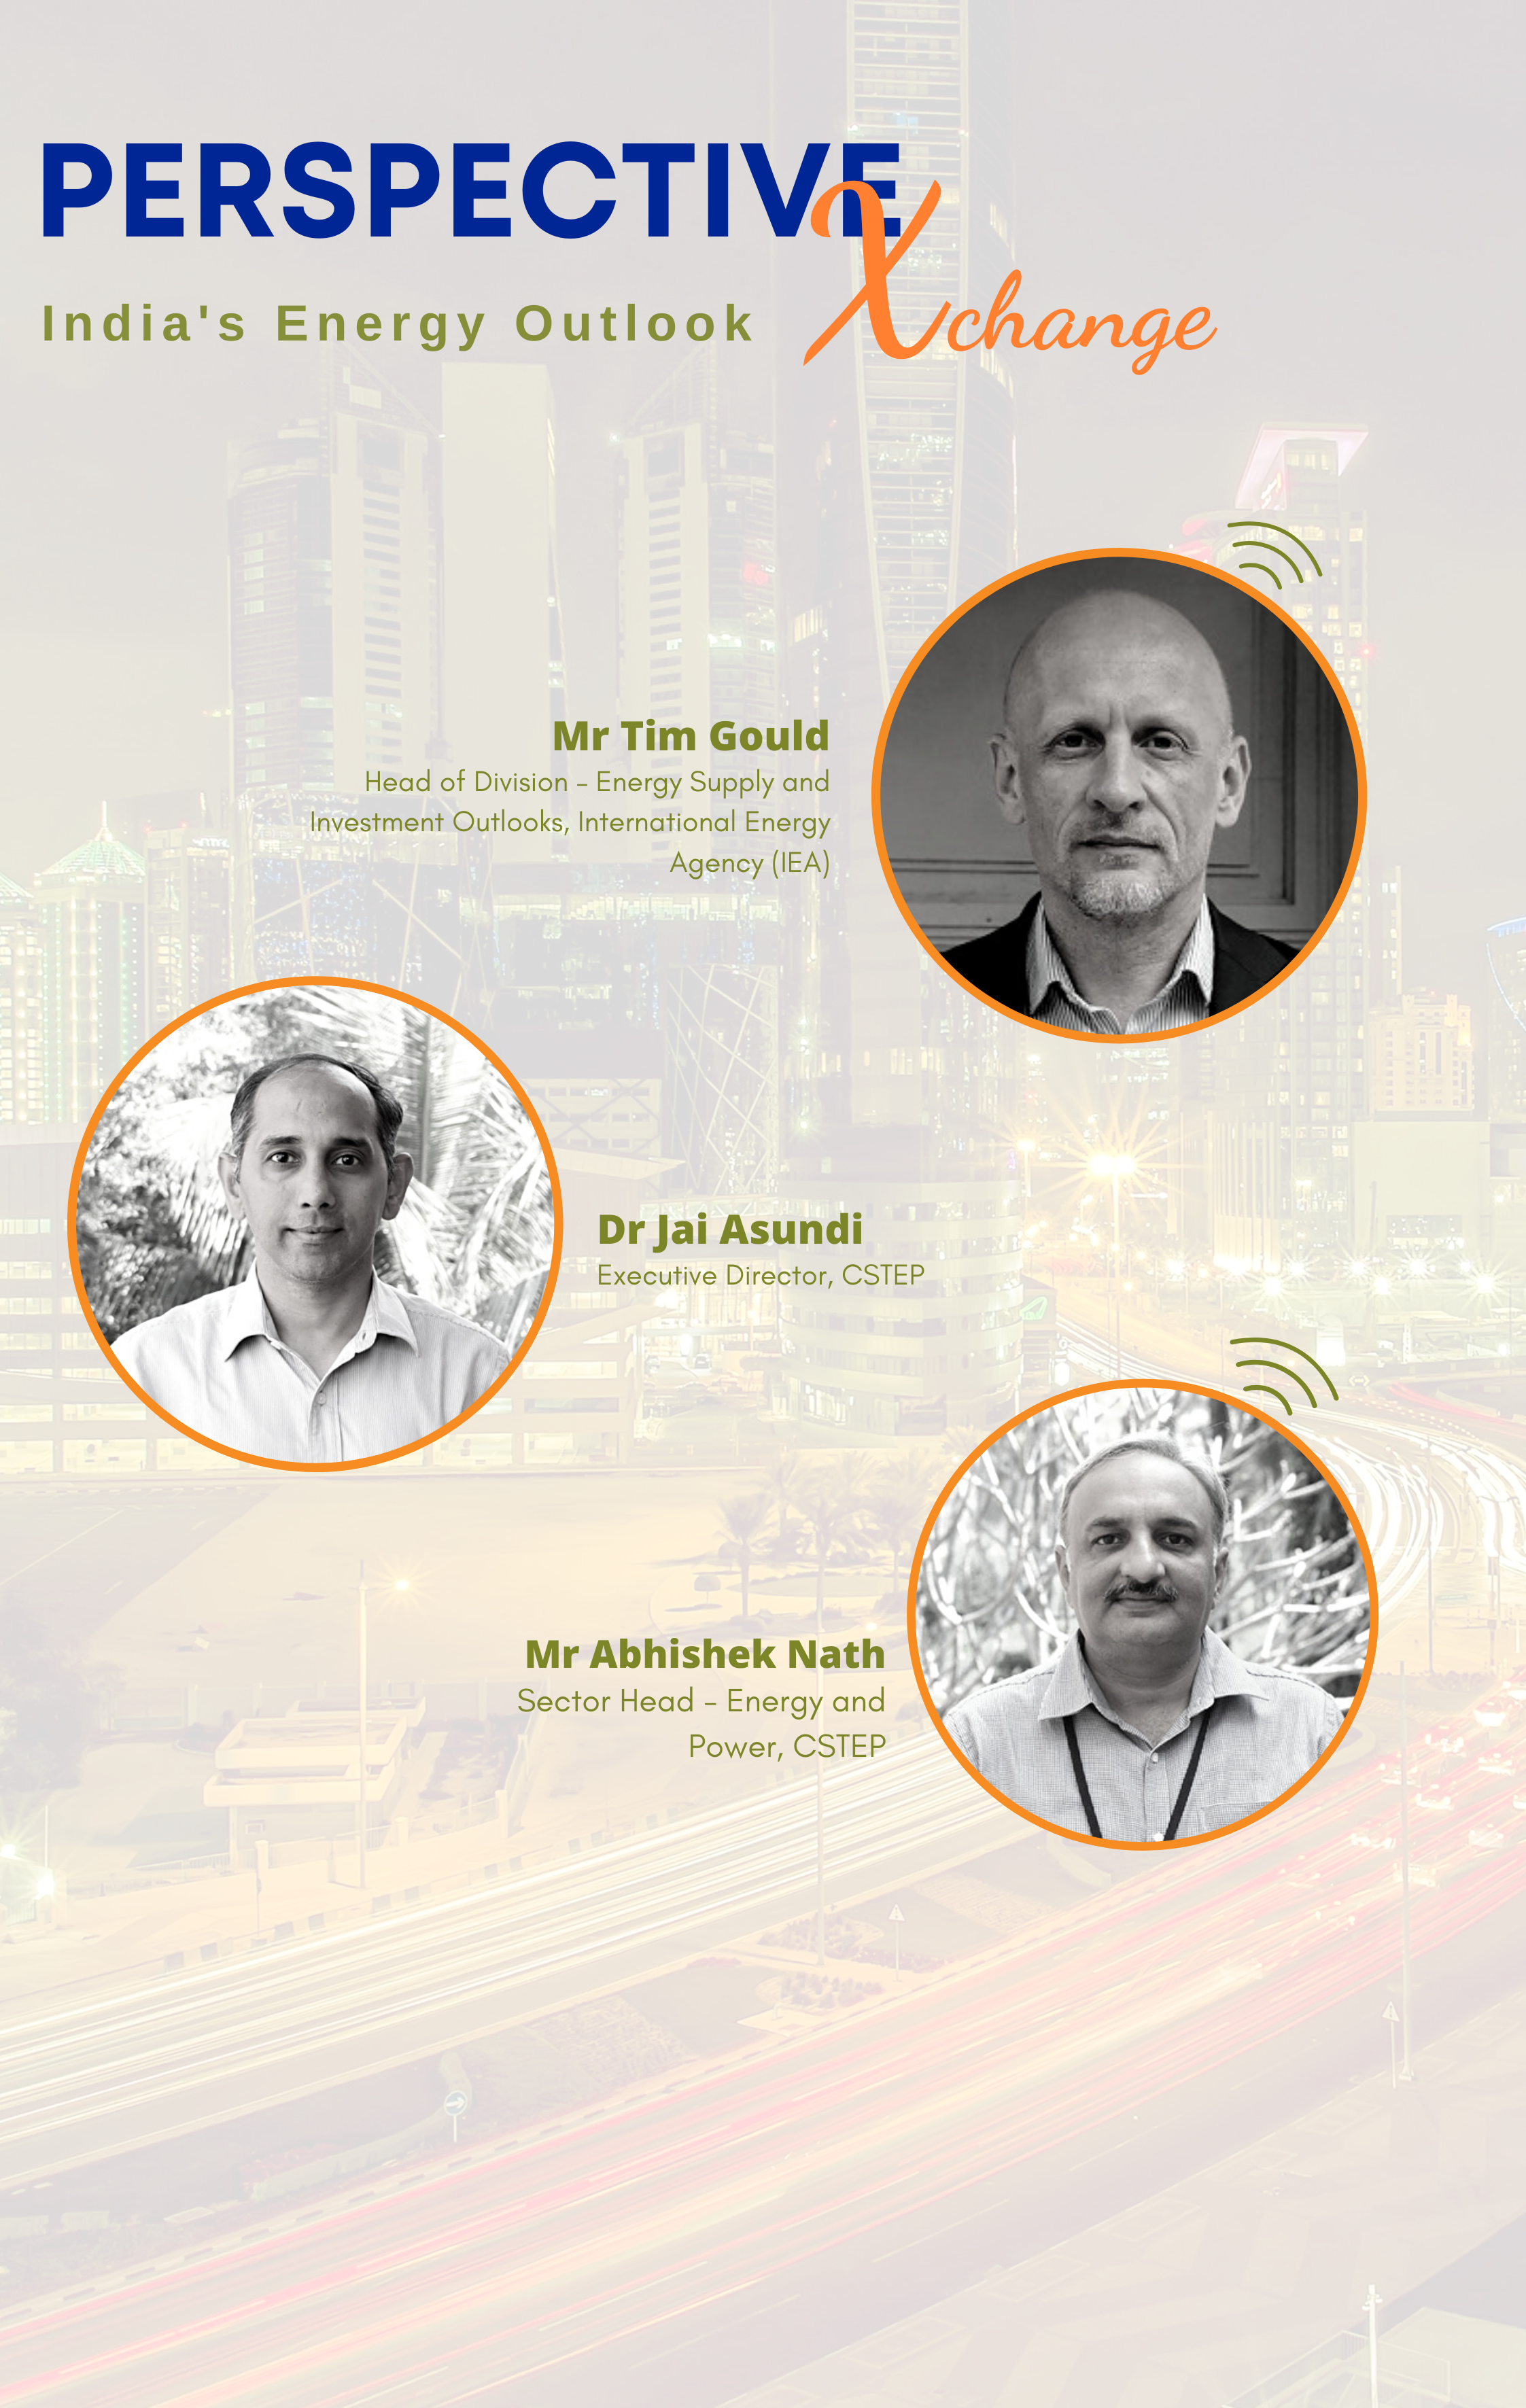 Perspective Xchange: Dr Jai Asundi and Mr Abhishek Nath in conversation With Mr Tim Gould